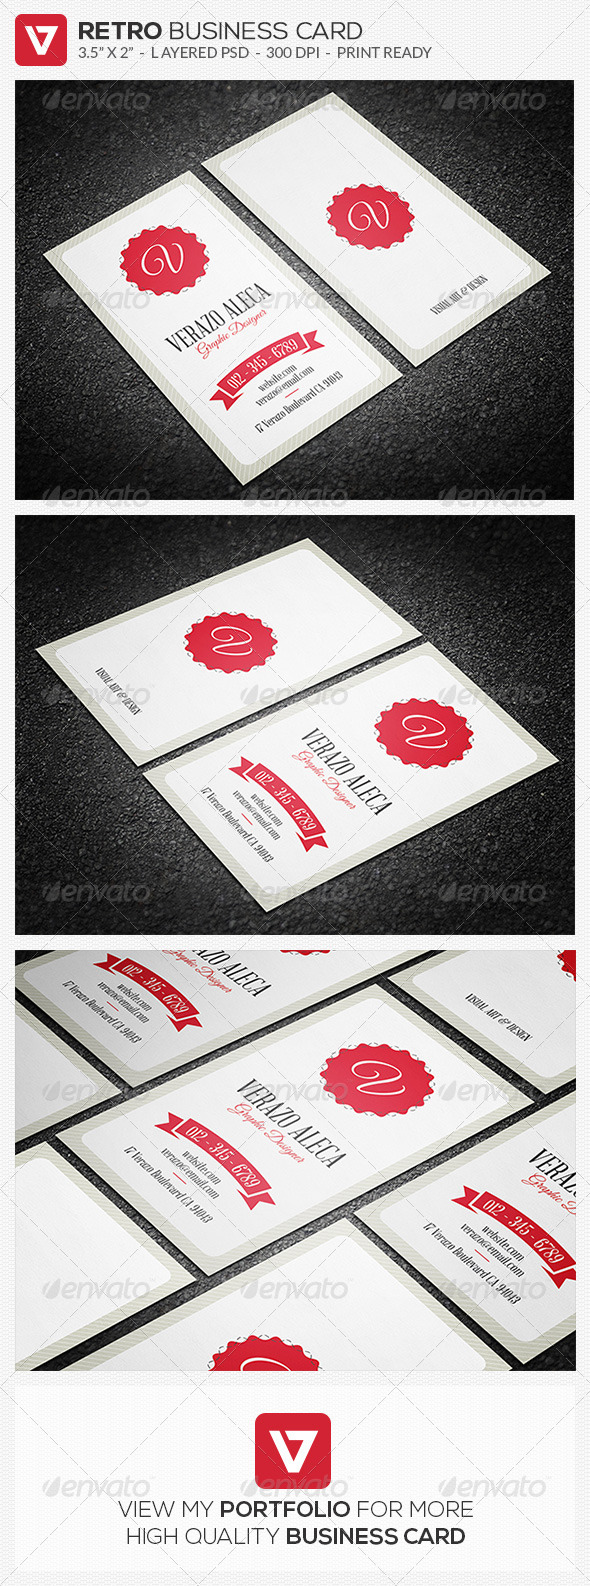 GraphicRiver Retro Vintage Business Card 02 8469370